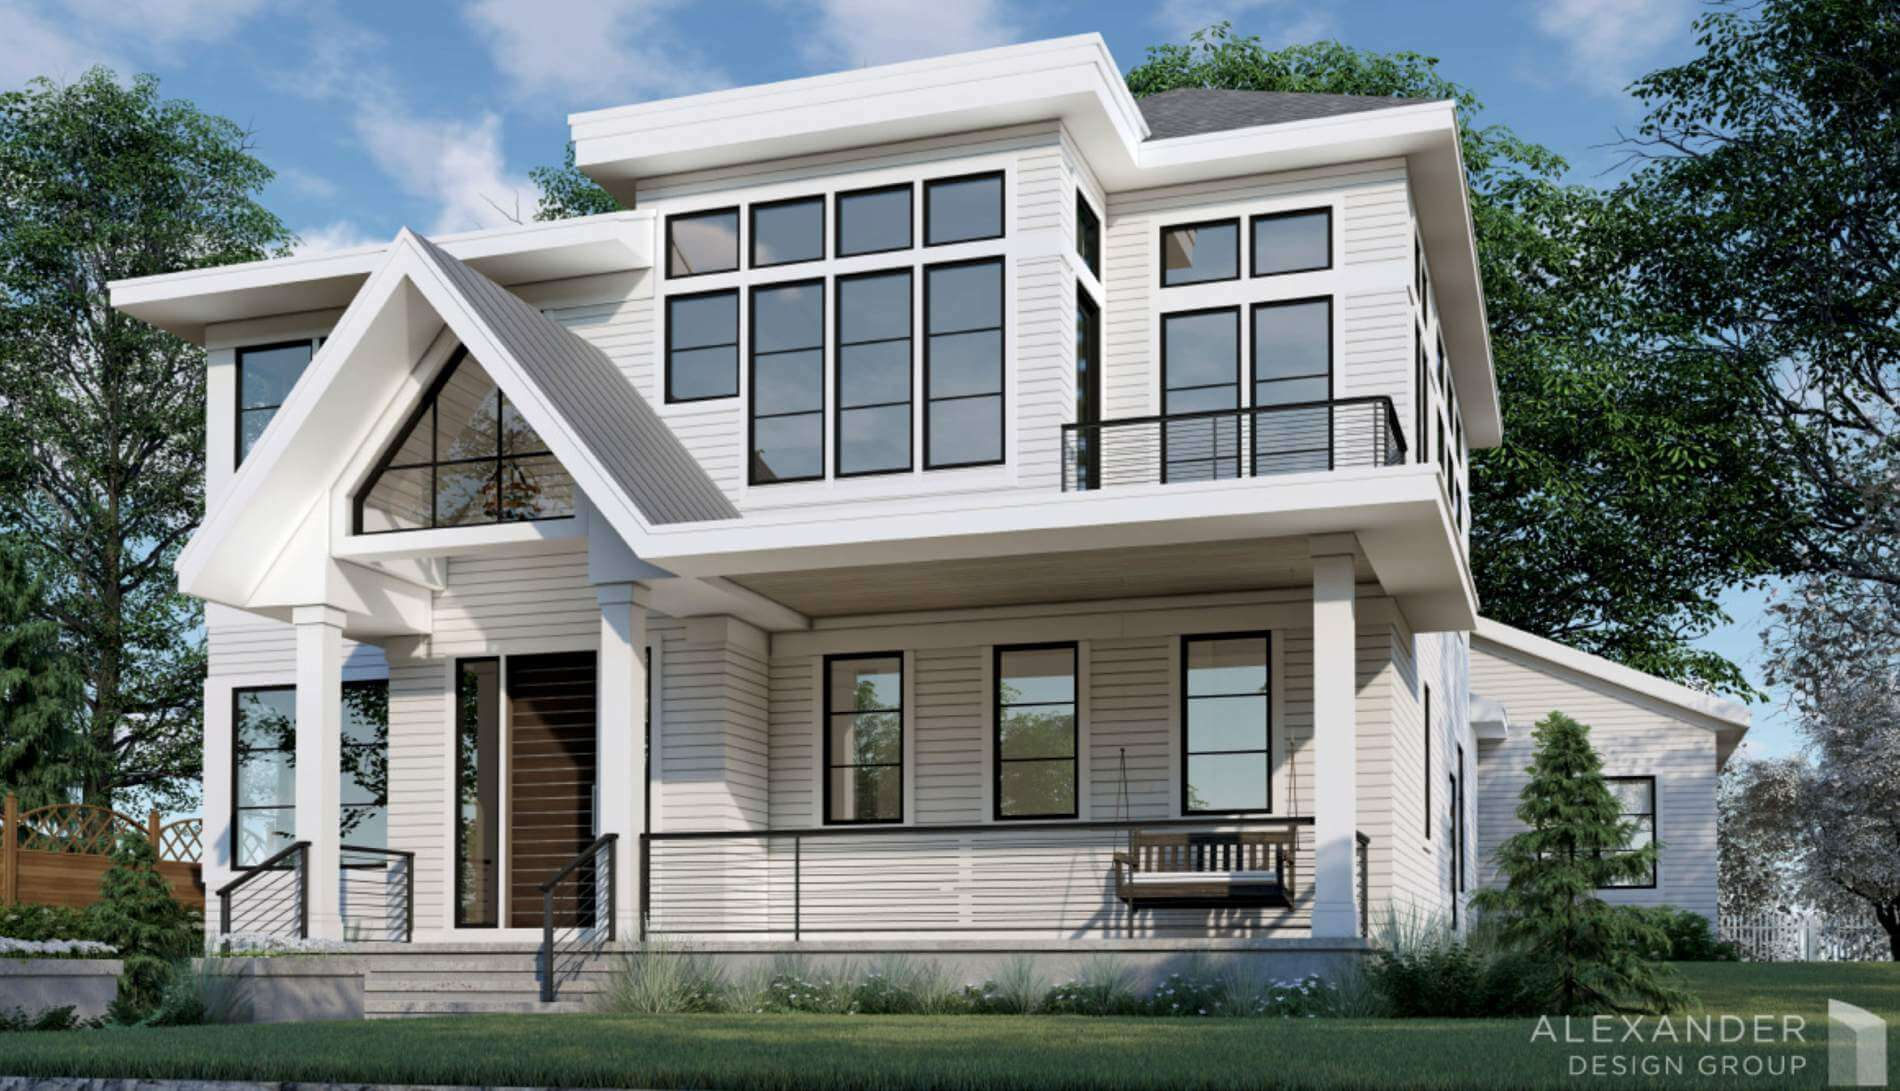 2019 Spring Parade Dream Home - City Homes/Edina and Minneapolis Area Custom Home Builder